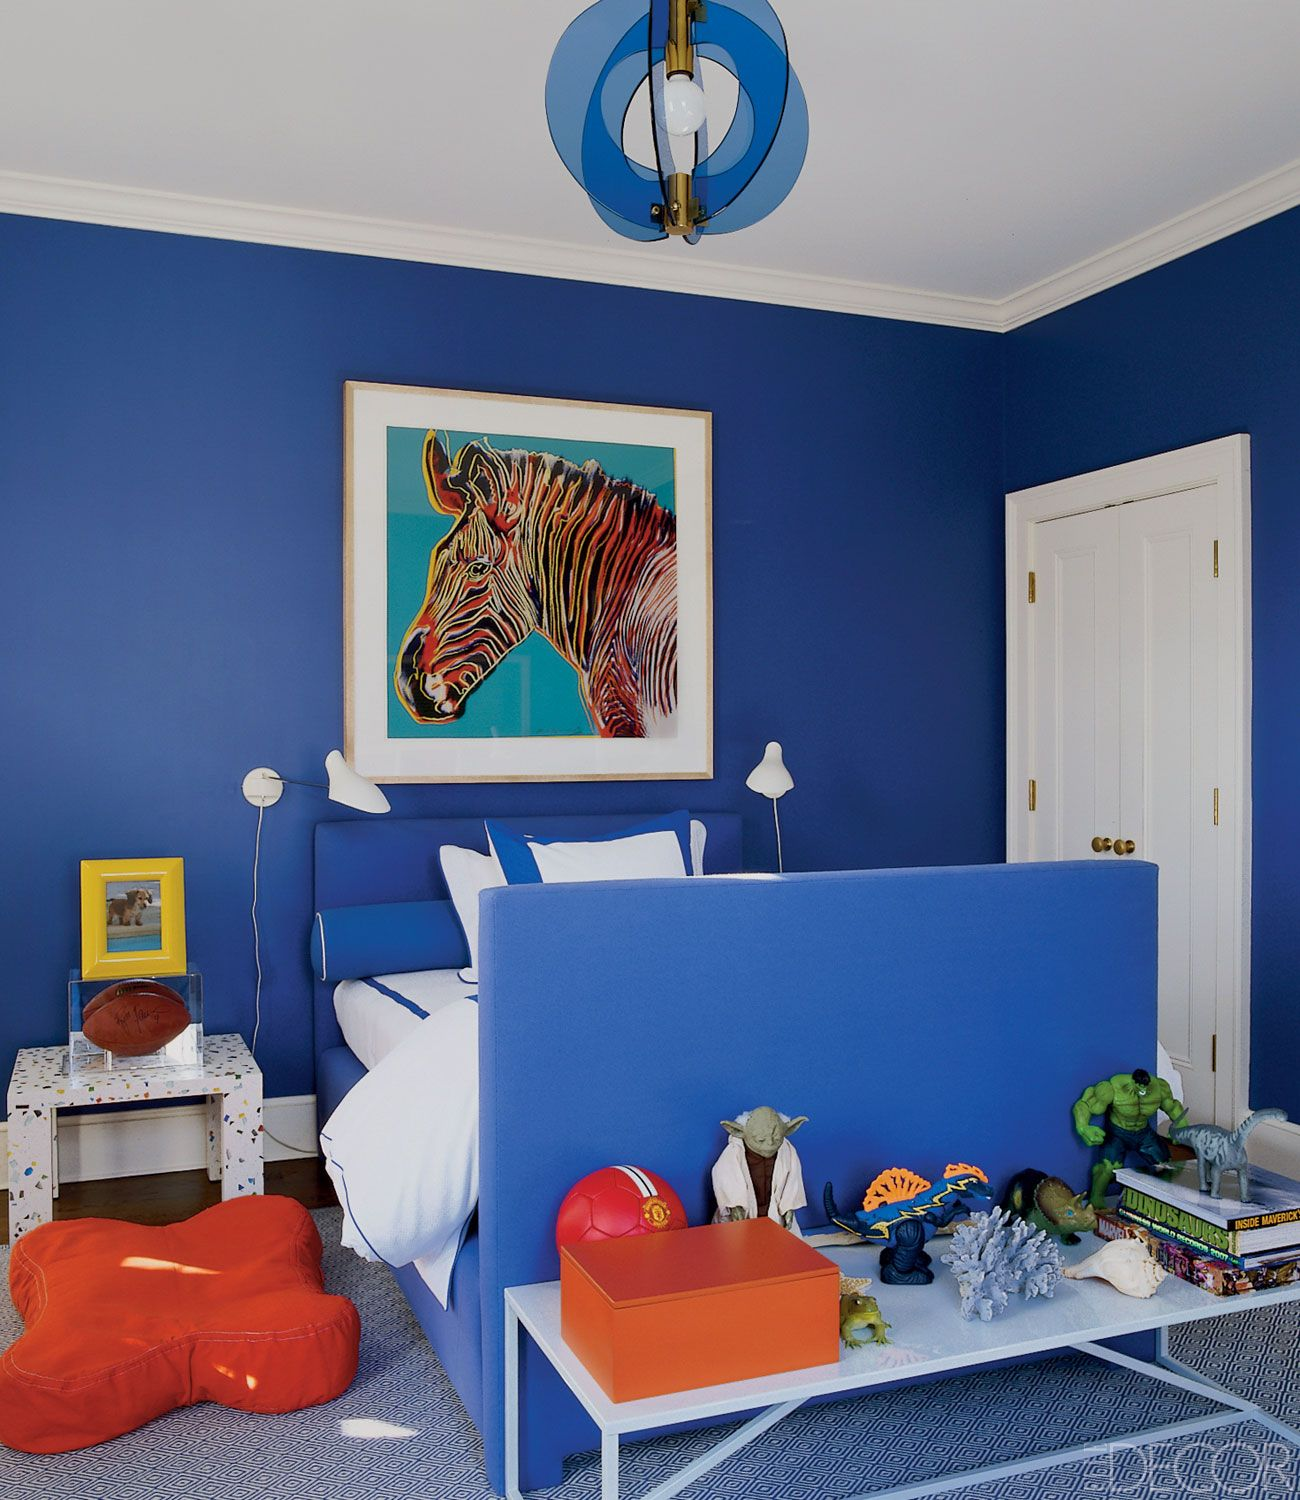 15 cool boys bedroom ideas decorating a little boy room - Boy Bedroom Decor Ideas